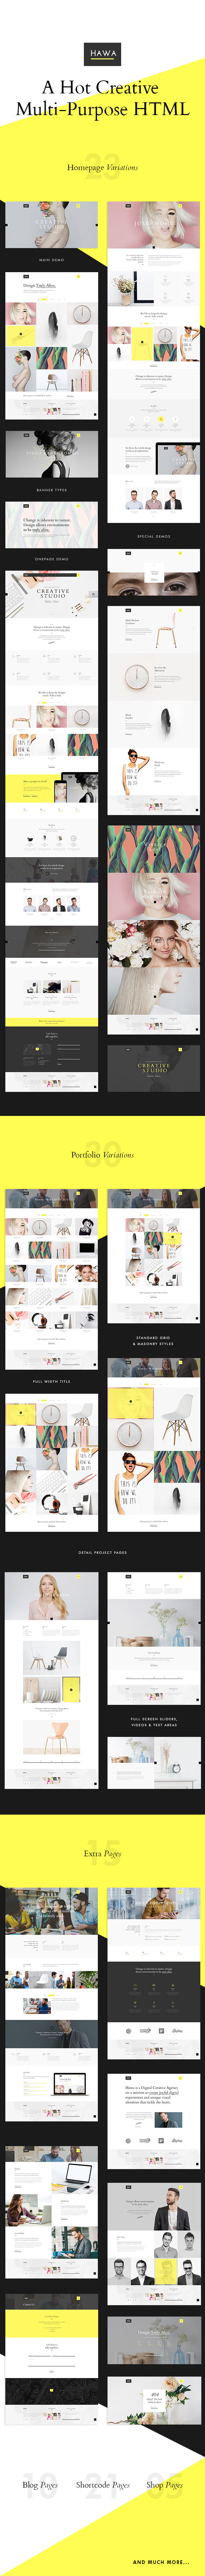 Hawa - A Hot Creative Multi-Purpose Template - 7